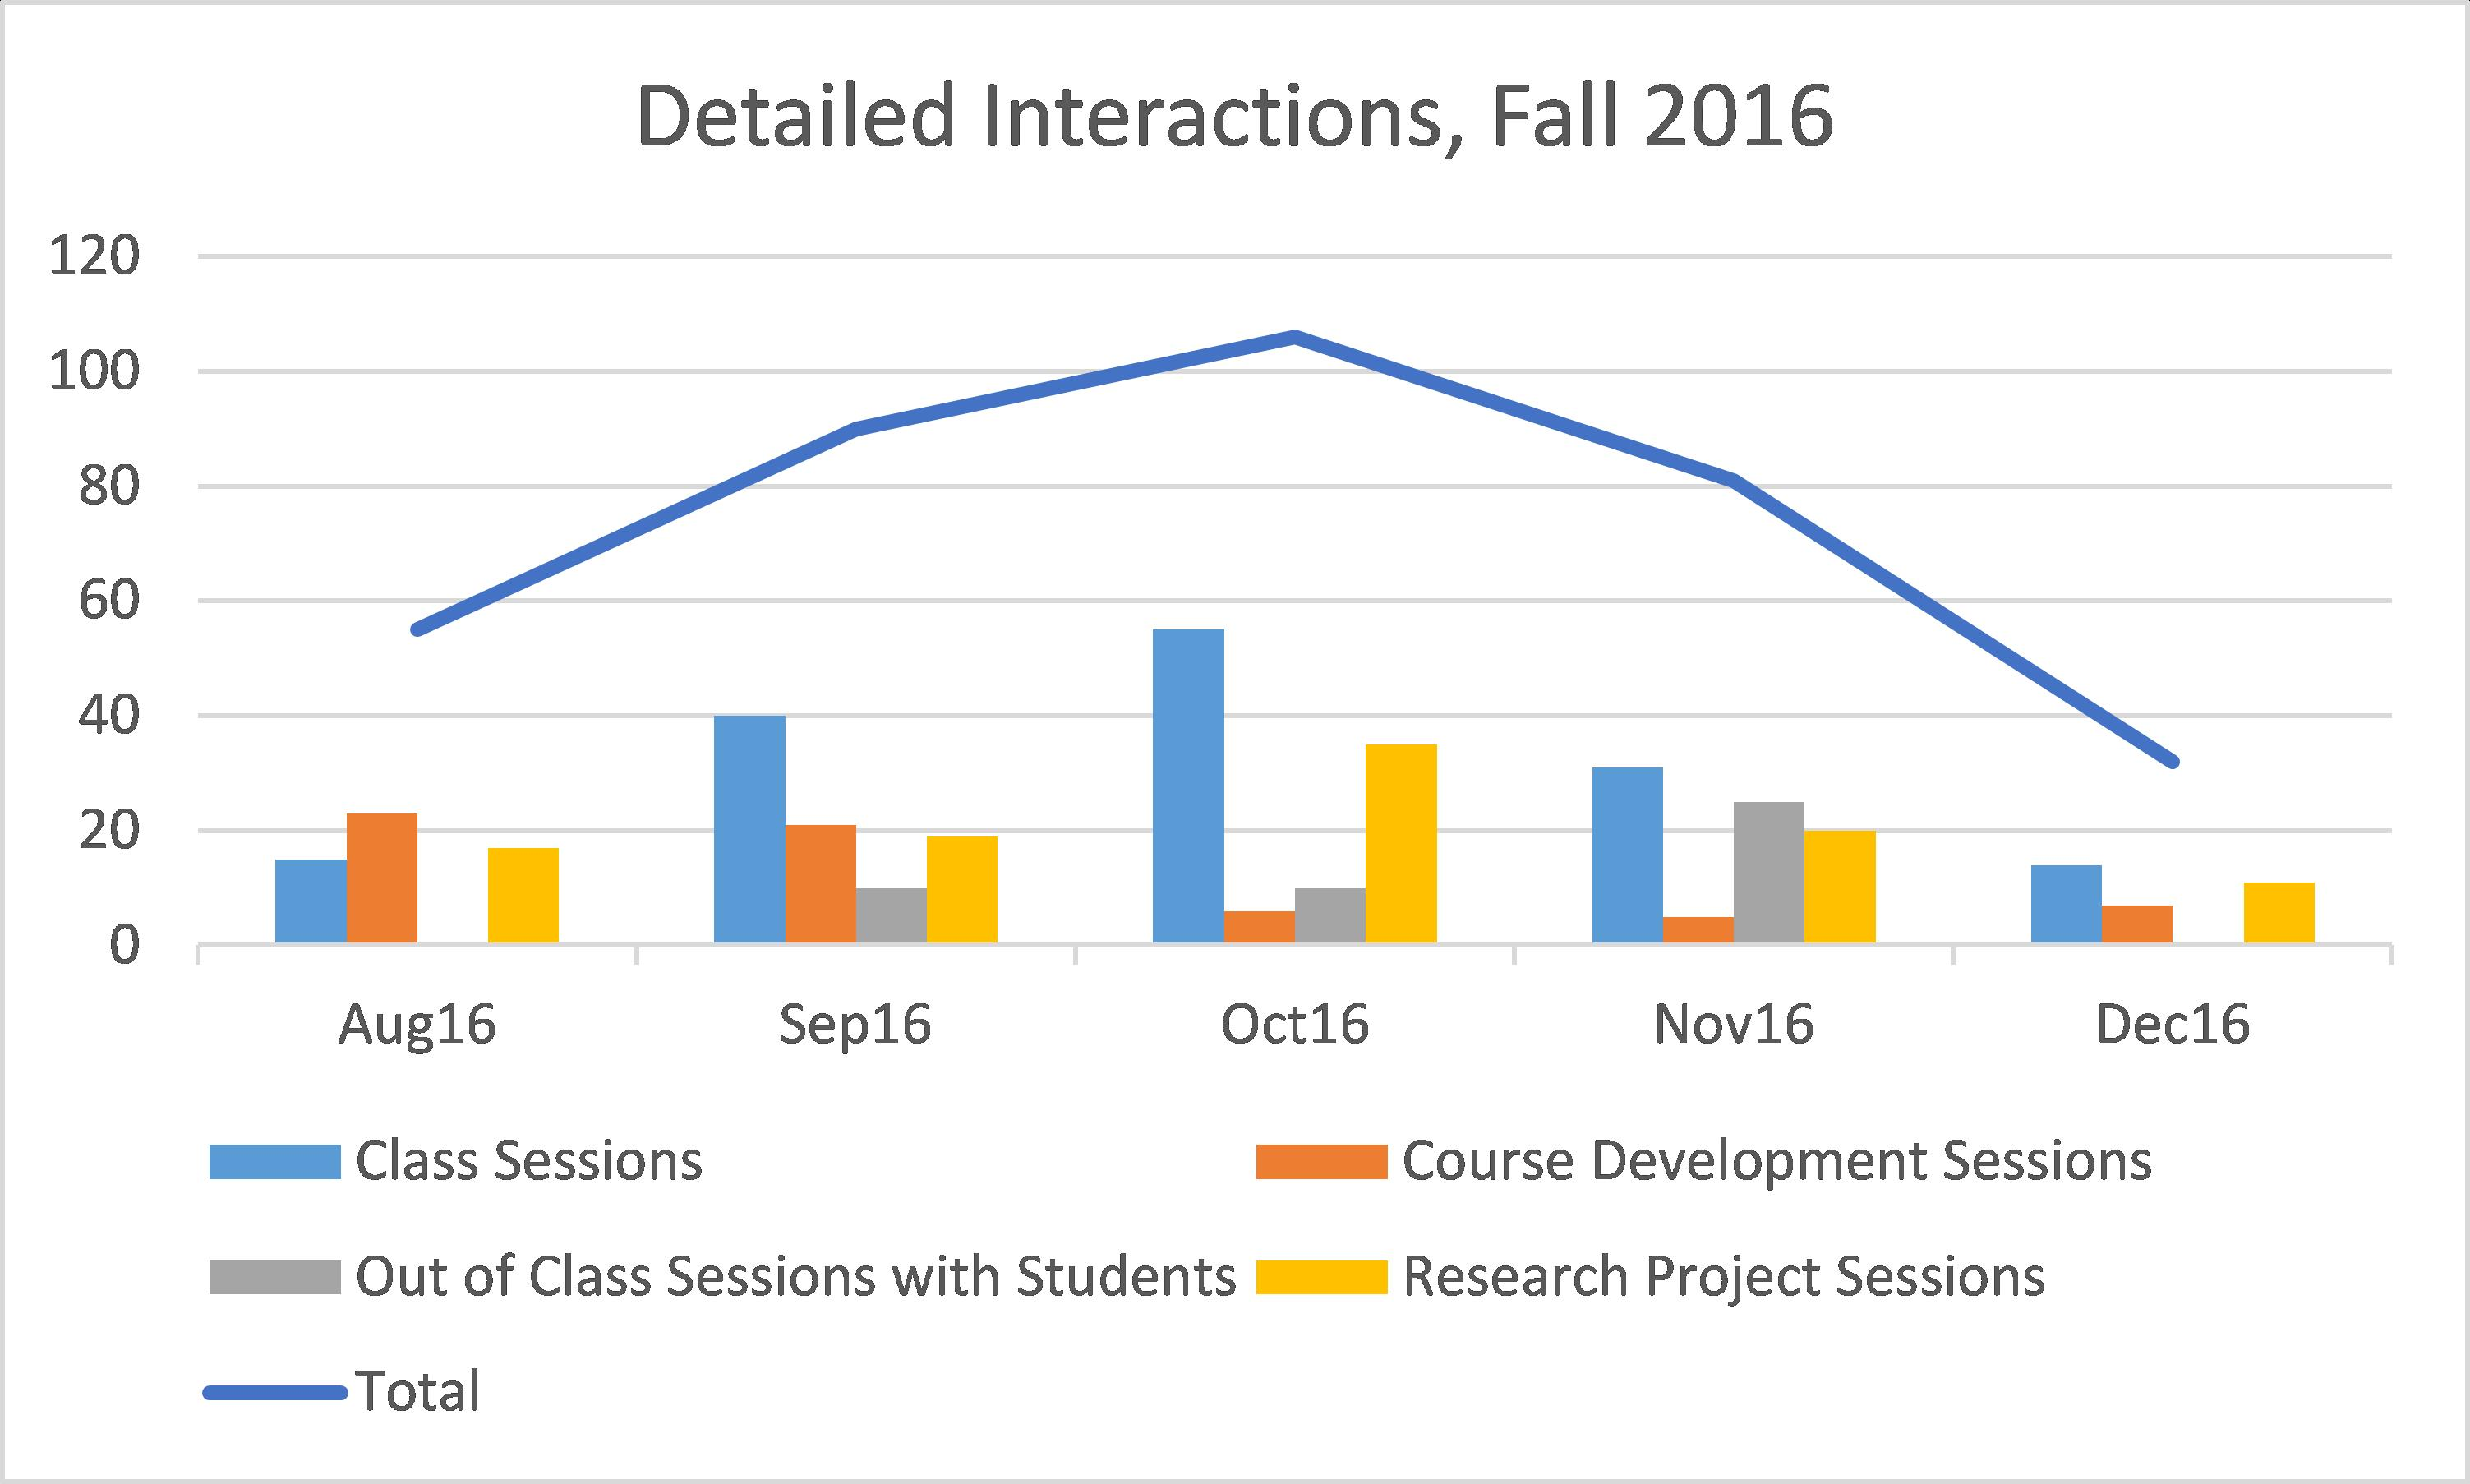 Detailed-Interactions-Fall-2016